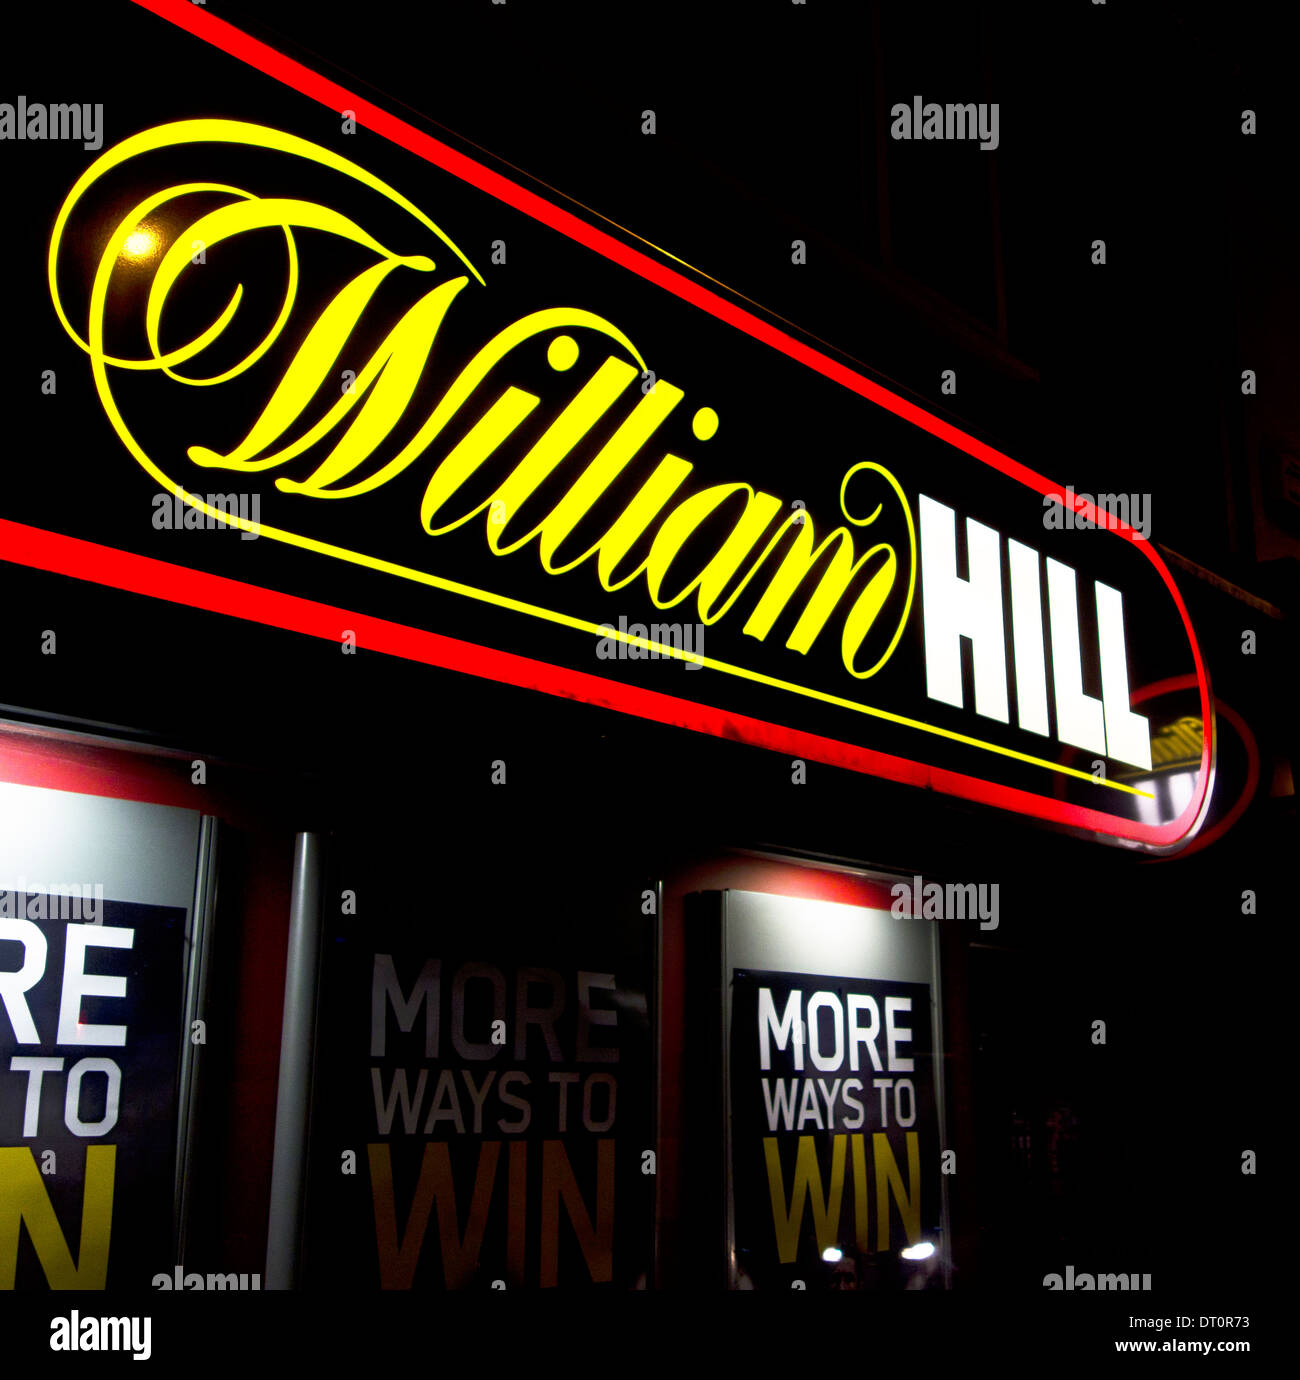 William Hill Betting Shop Sign Illuminated At Night, UK - Stock Image